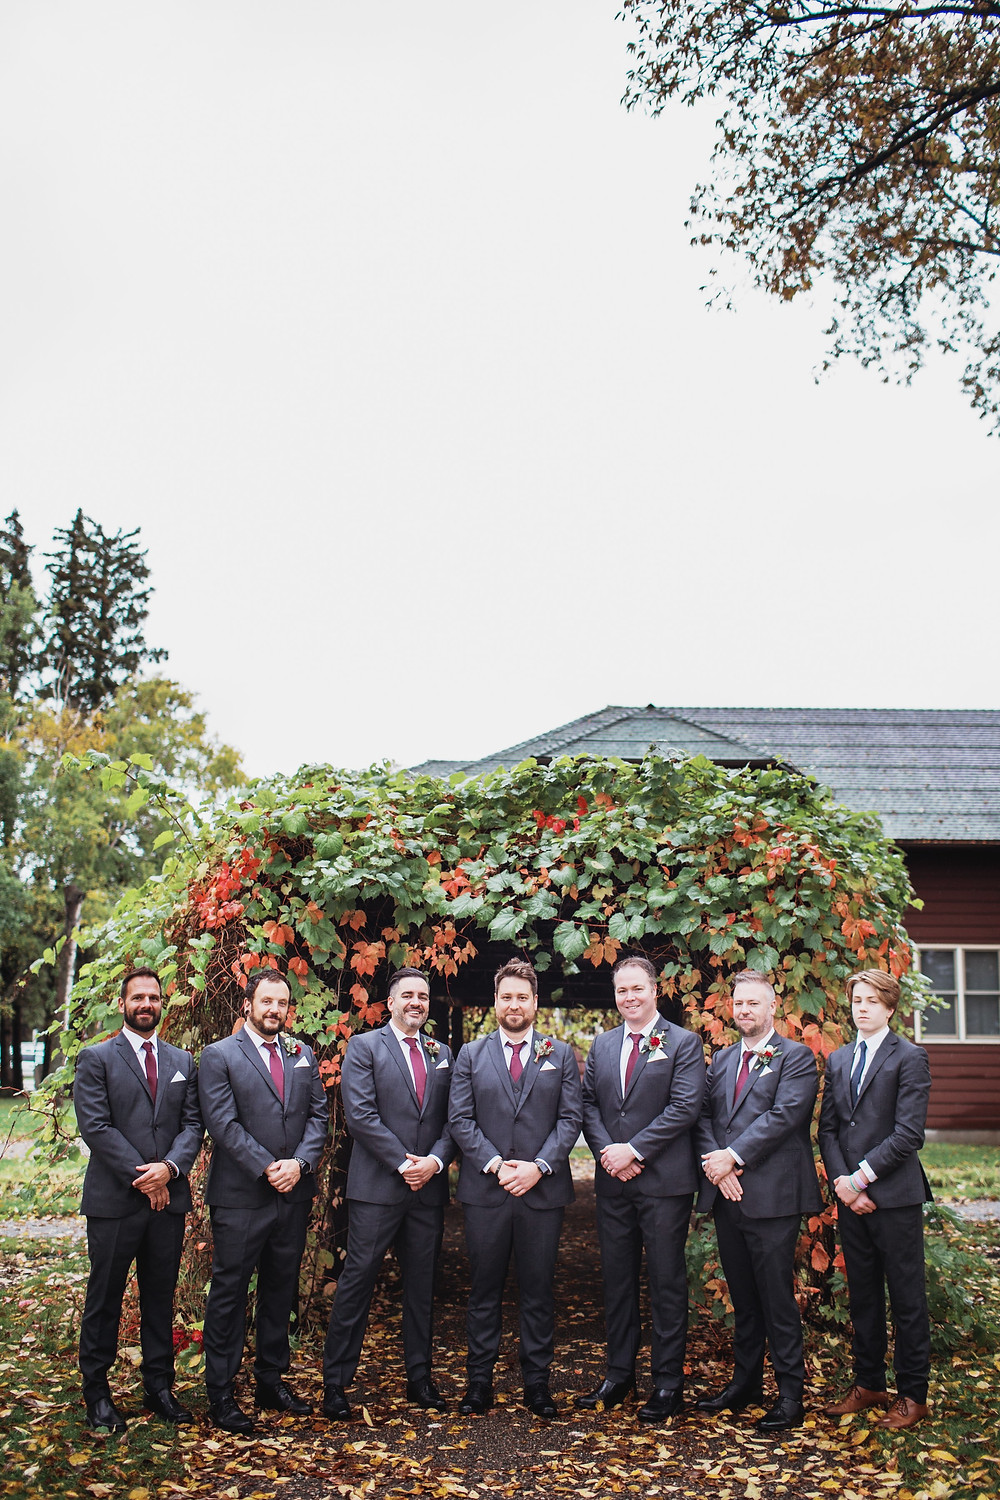 Groom and groomsmen in black suits with red boutonnieres.